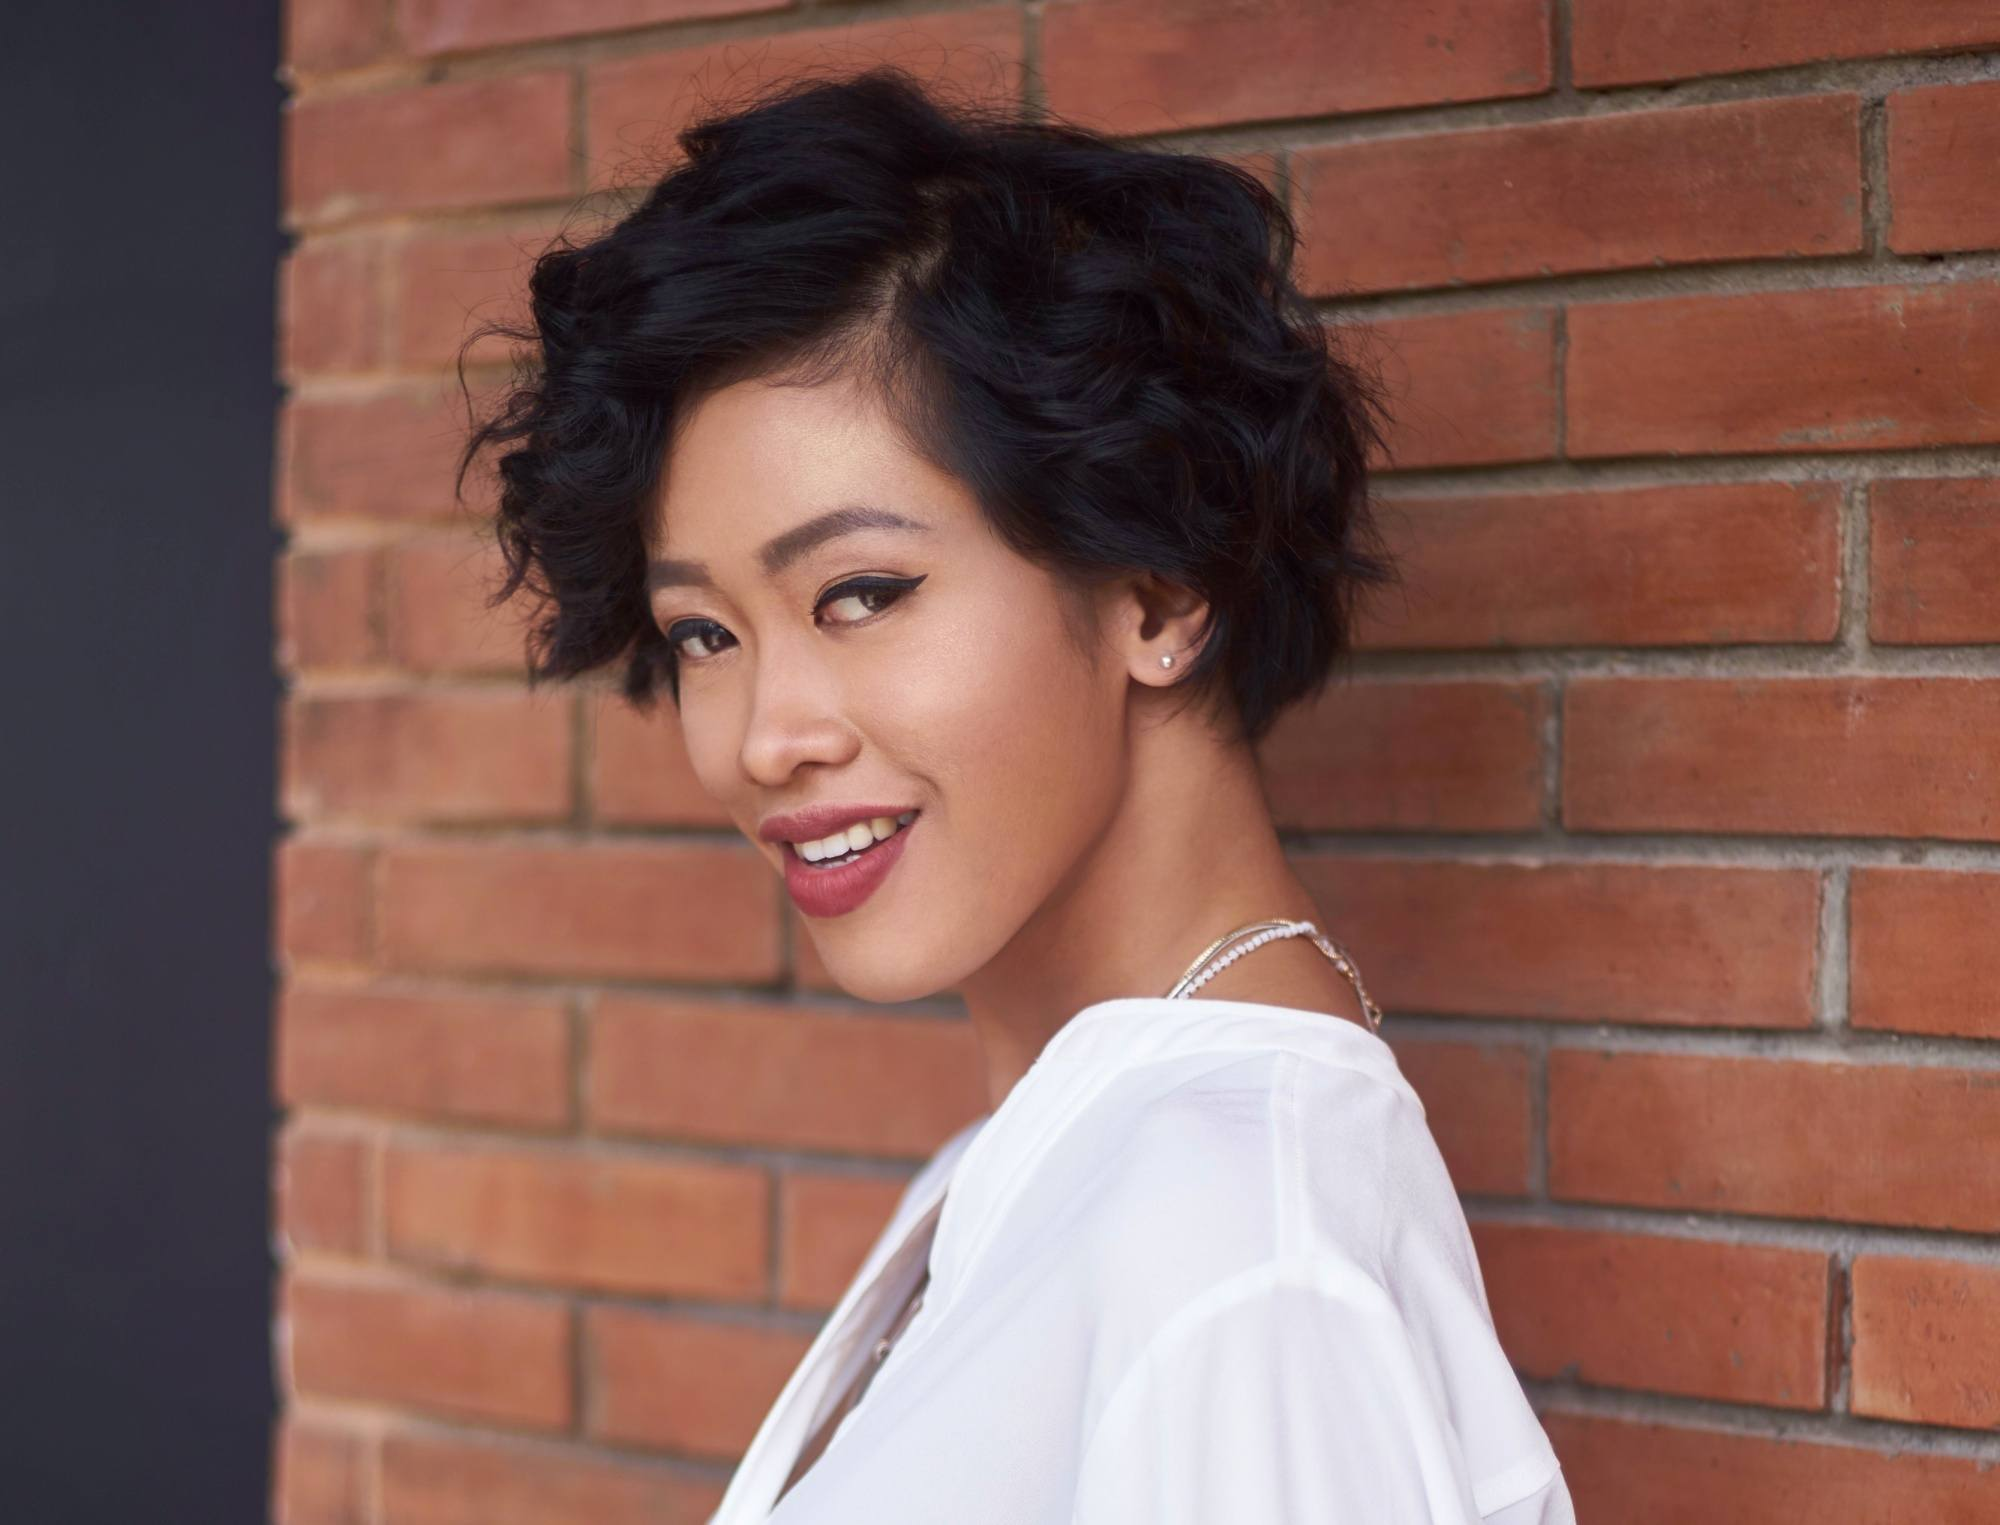 Layered curly hair: Closeup shot of an Asian woman with short black curly hair